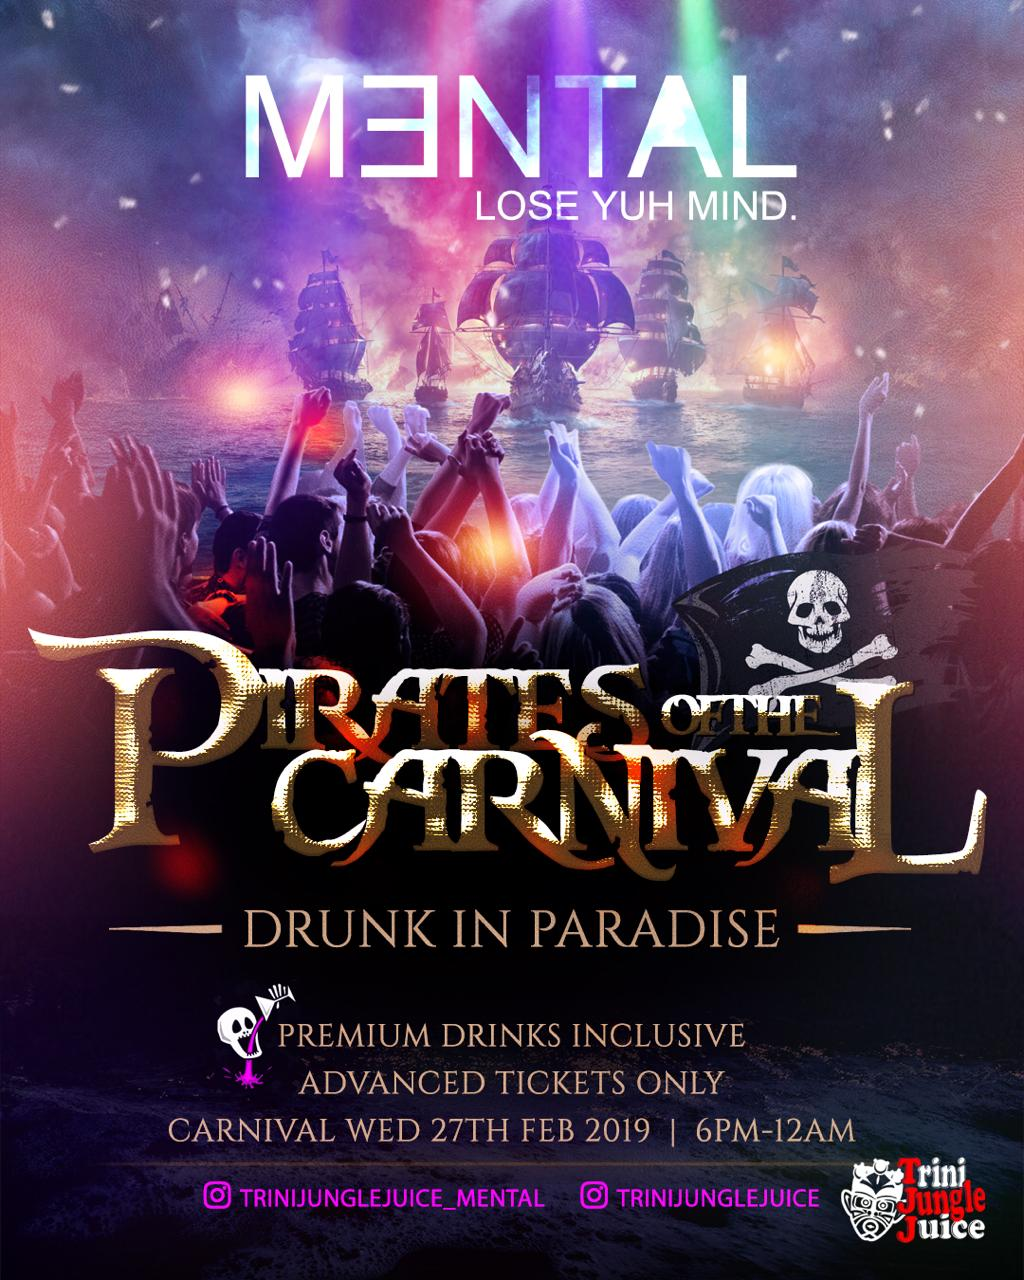 MENTAL 2019: Trini Jungle Juice Premium Drinks Inclusive